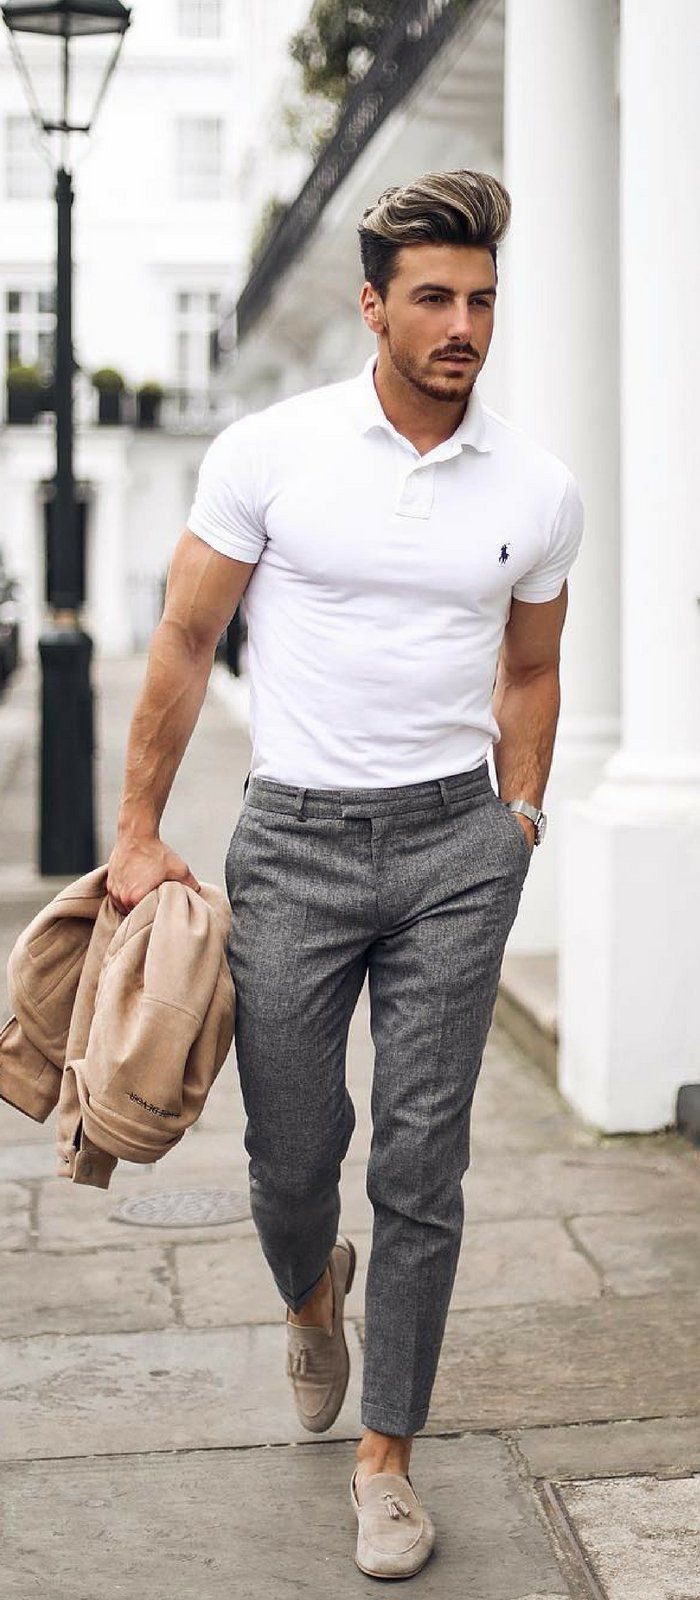 9 minimal business casual outfits for men men 39 s fashion pinterest business casual men. Black Bedroom Furniture Sets. Home Design Ideas